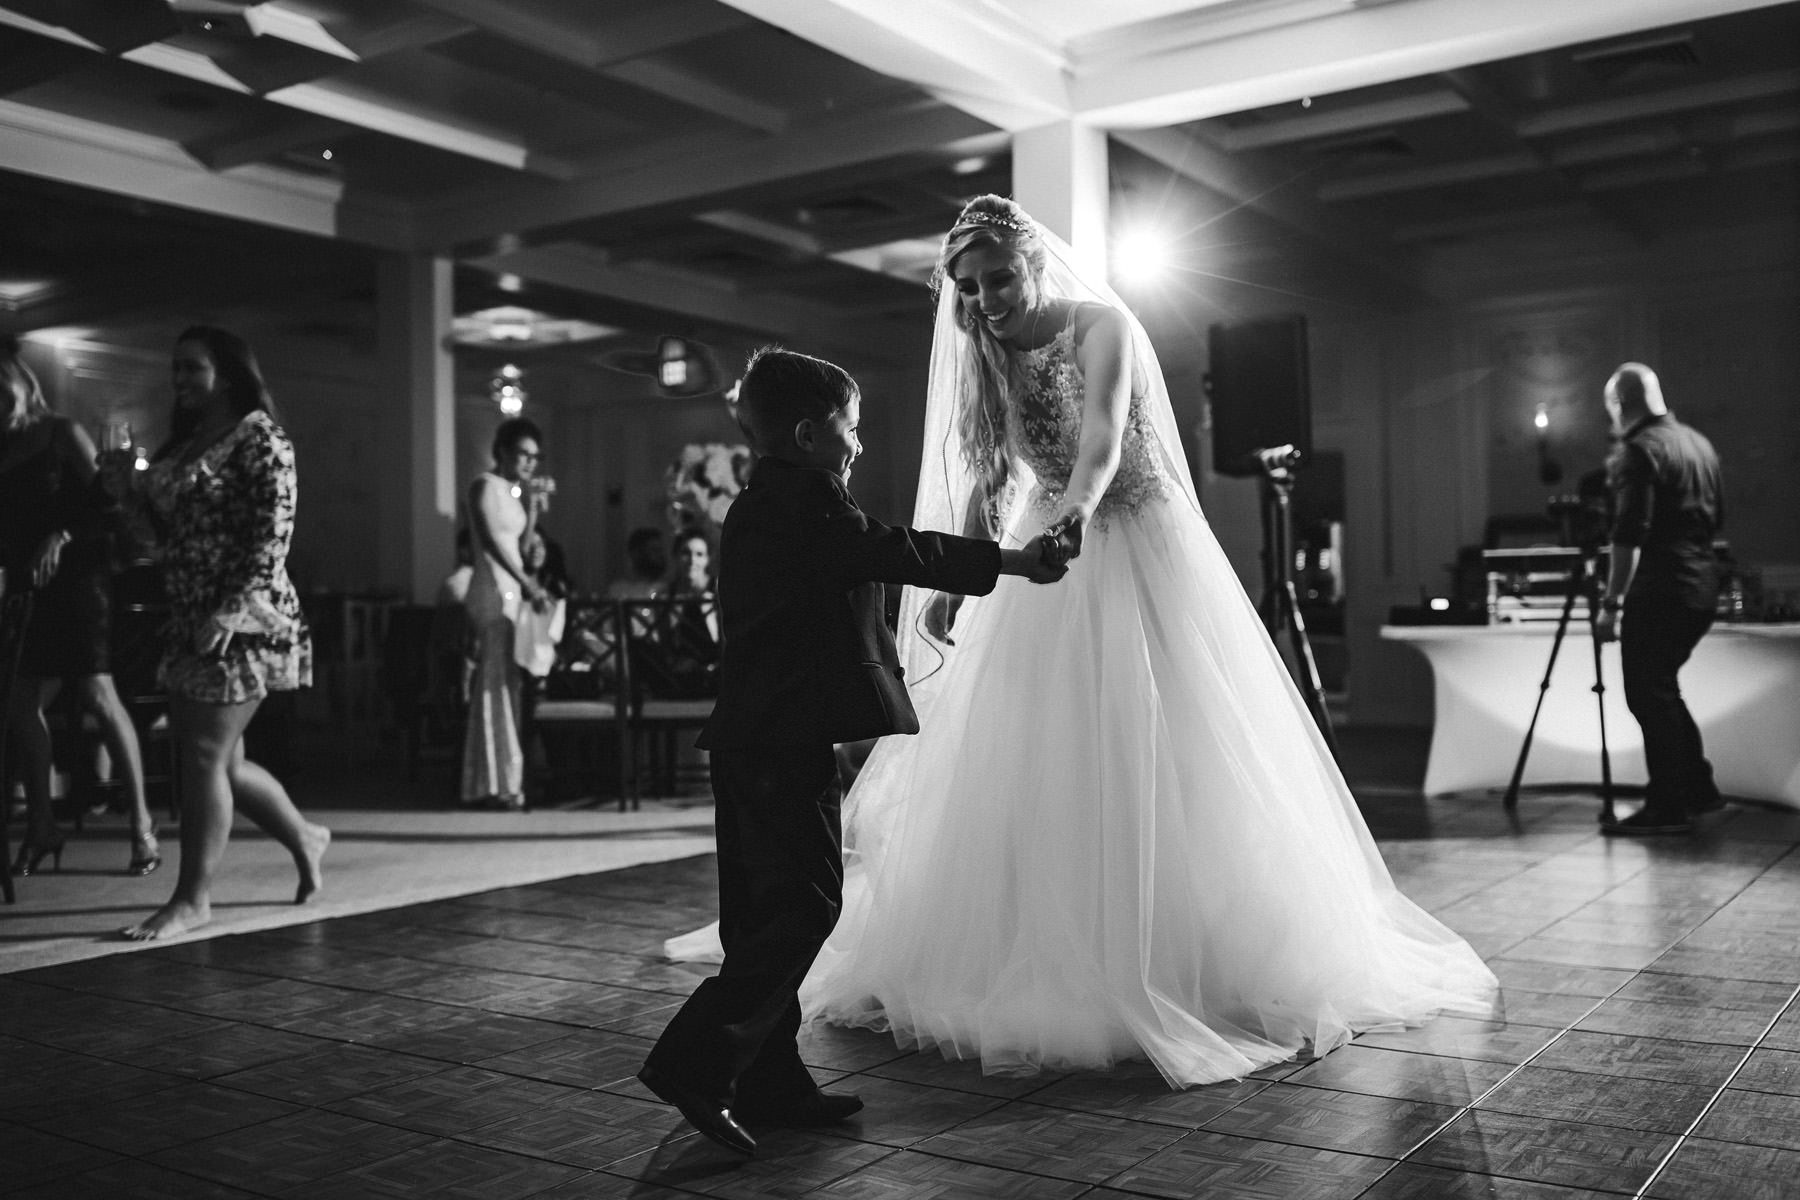 bride-son-dance-black-and-white-wedding-photography-tiny-house-photo.jpg